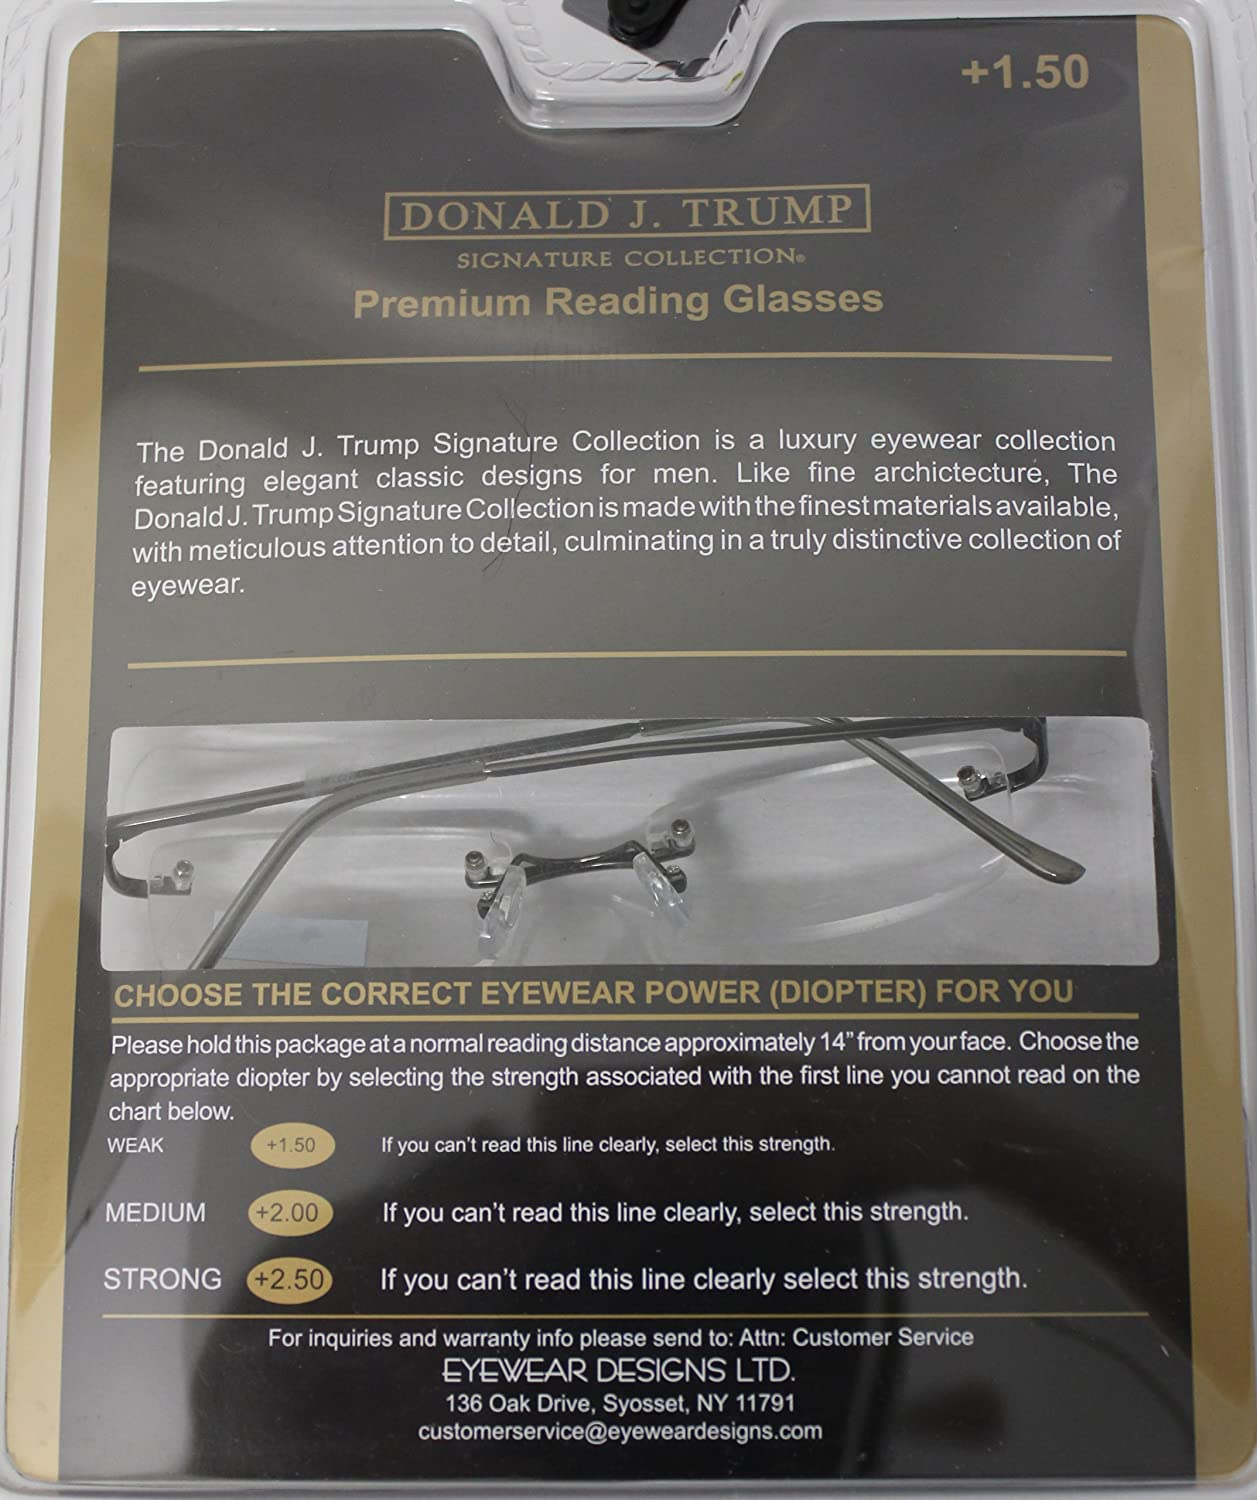 Donald Trump Readers Two Pack Rectangle Rimless Gunmetal, Metal Power +1.50